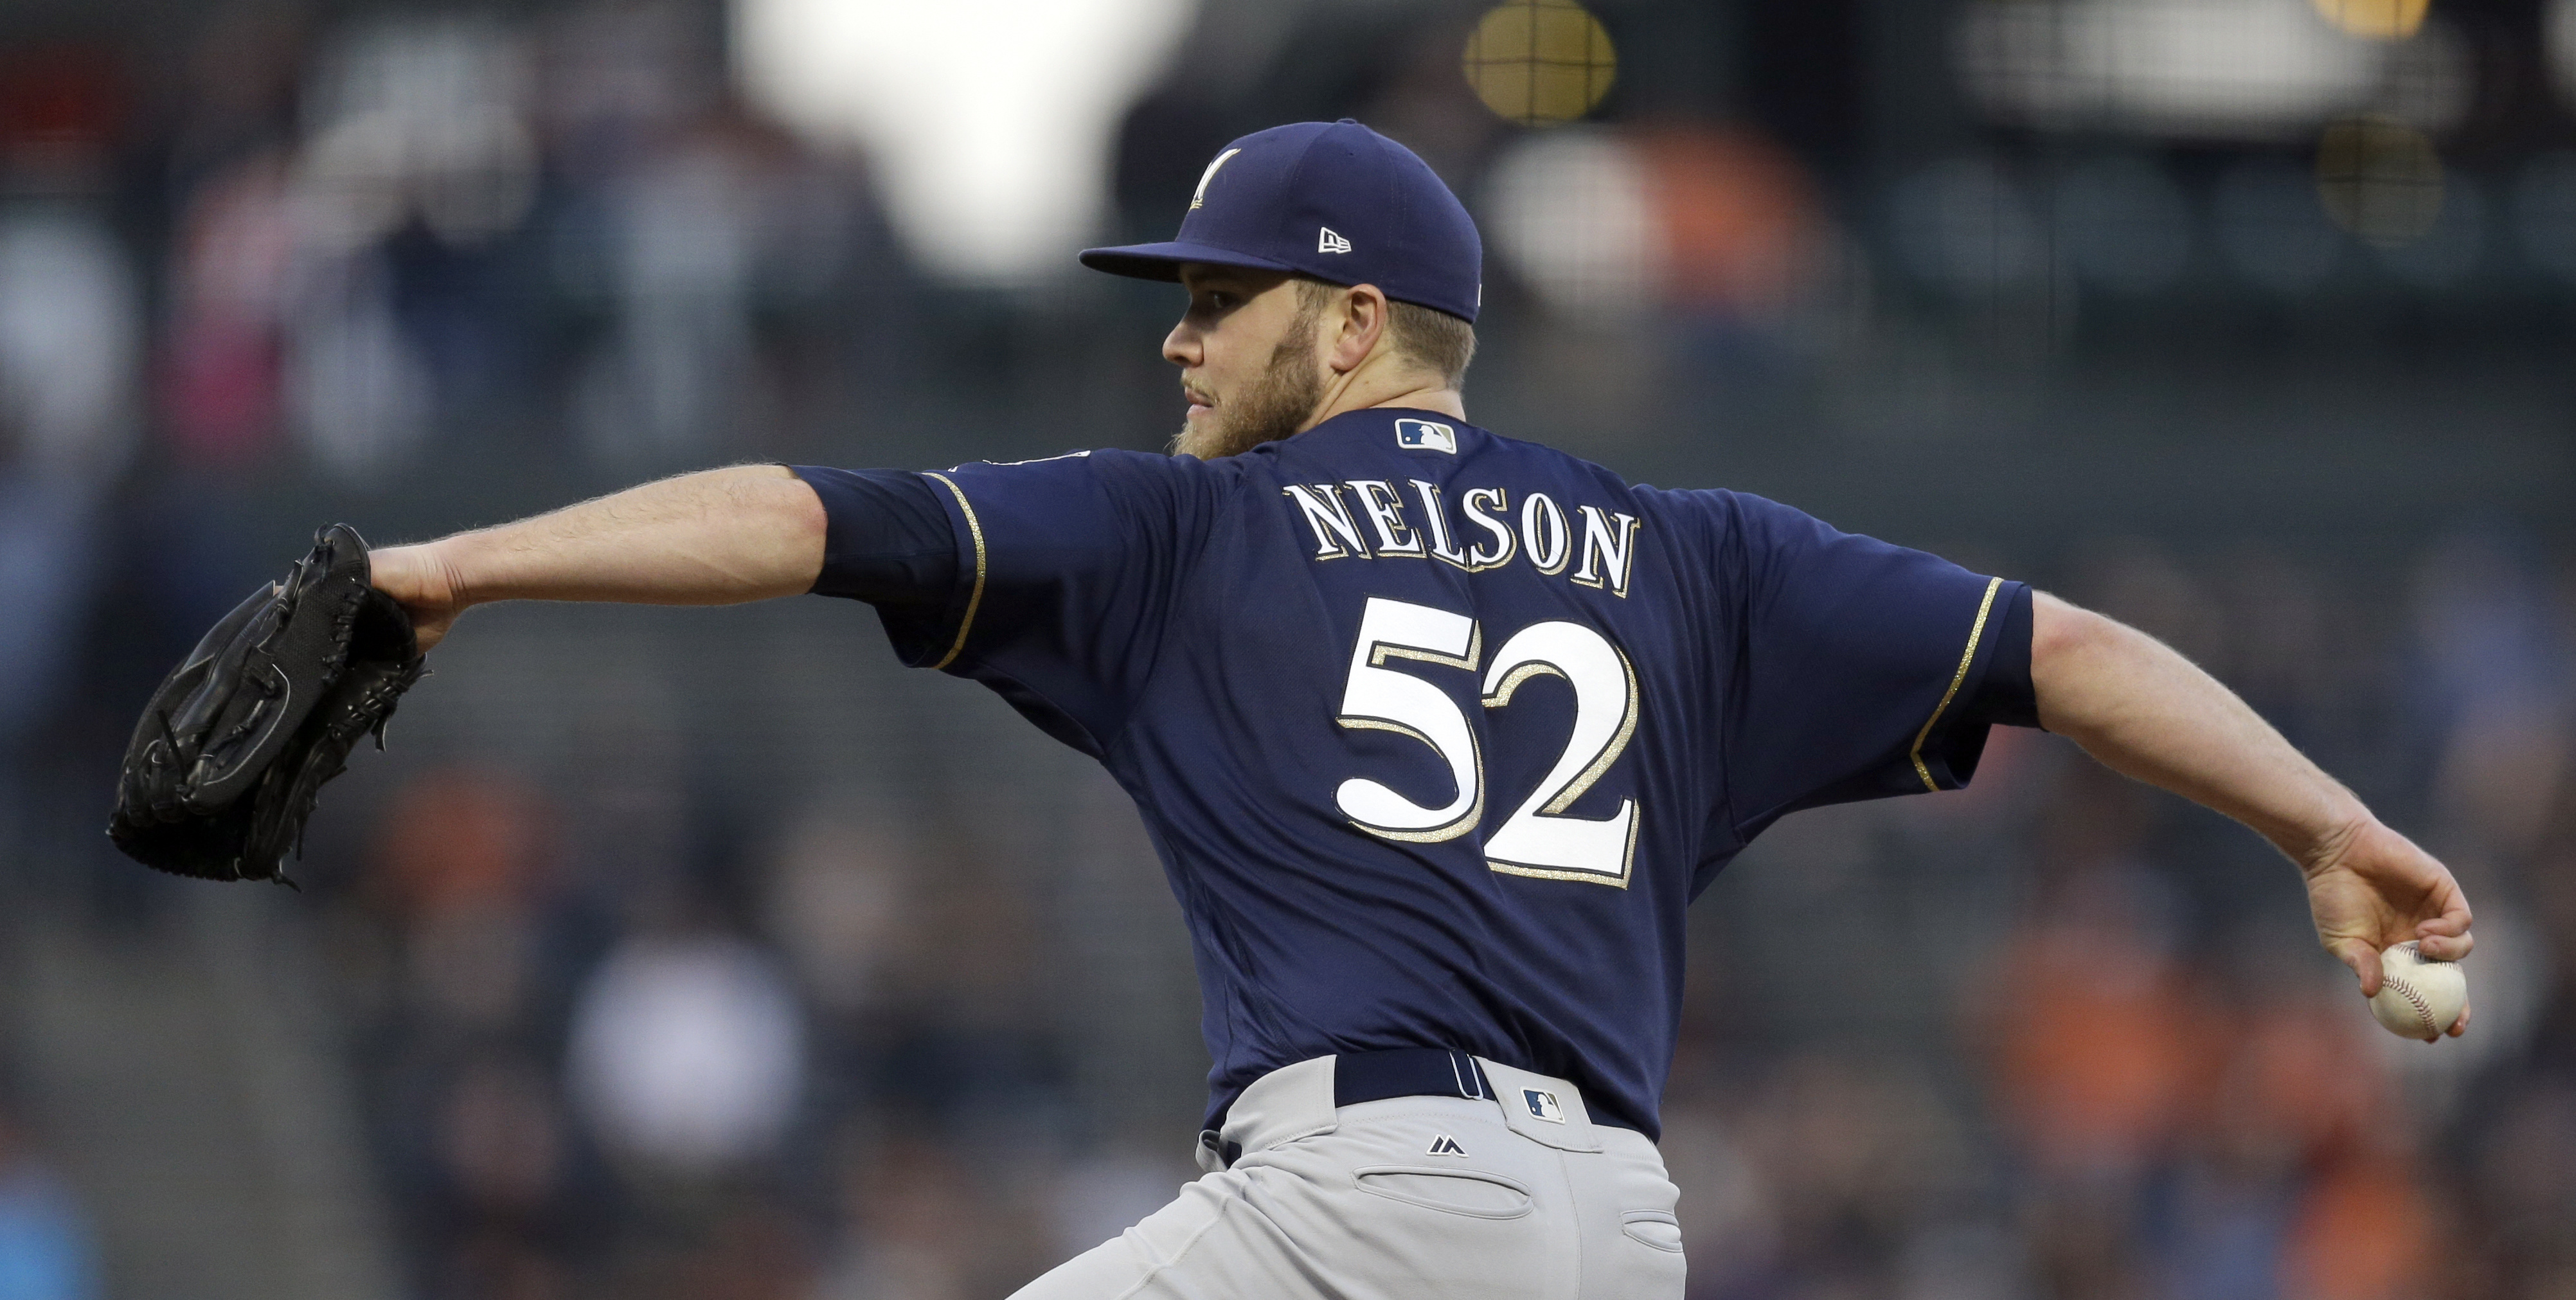 Milwaukee Brewers pitcher Jimmy Nelson works against the San Francisco Giants in the first inning Tuesday, Aug. 22, 2017, in San Francisco. (AP Photo/Ben Margot)